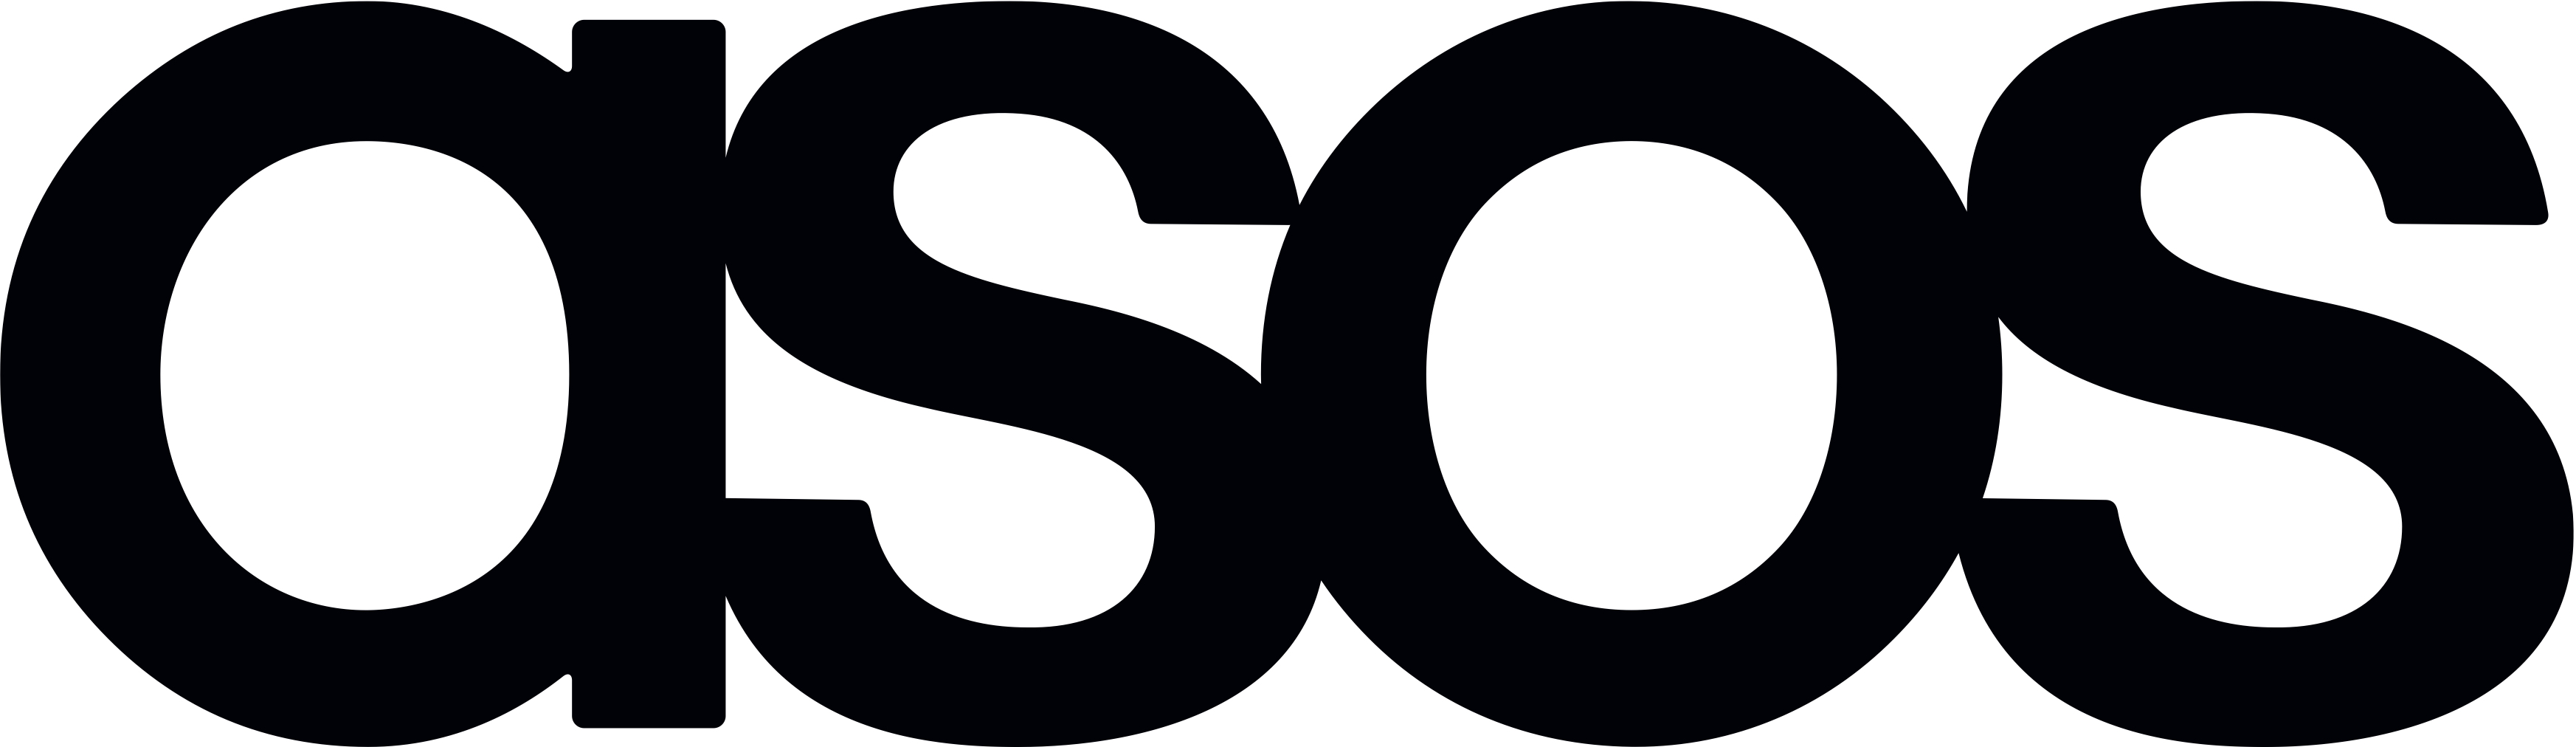 ASOS Promotions & Discounts